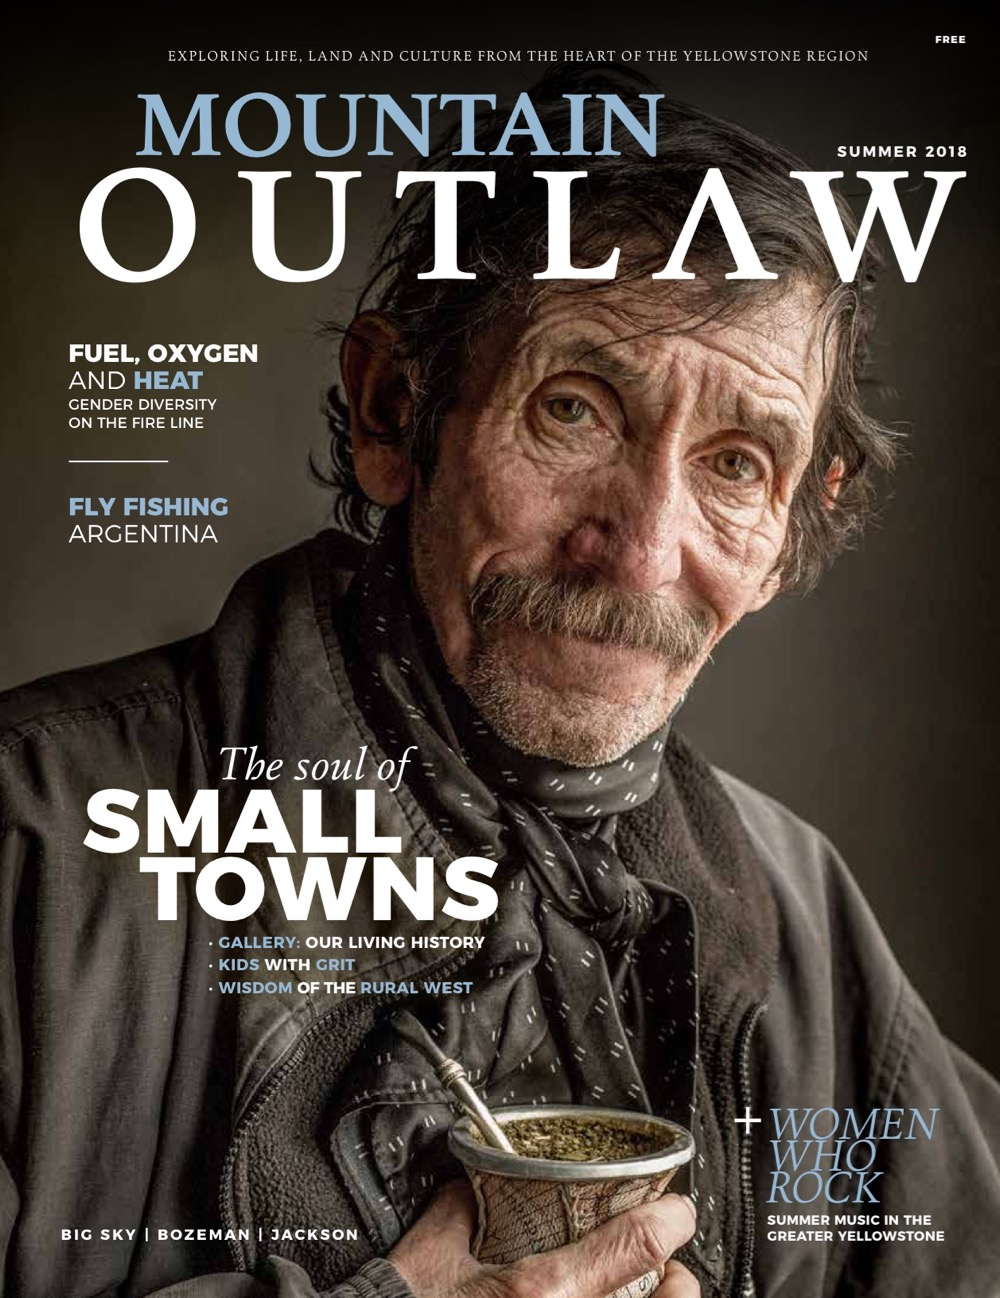 Fuel, Oxygen and Heat   Gender discrimination, sexual harassment and assault have been endemic to the male-dominated culture of American wildland firefighting for over a century. One government agency, the BLM, is working to make change.  Mountain Outlaw, Summer 2018